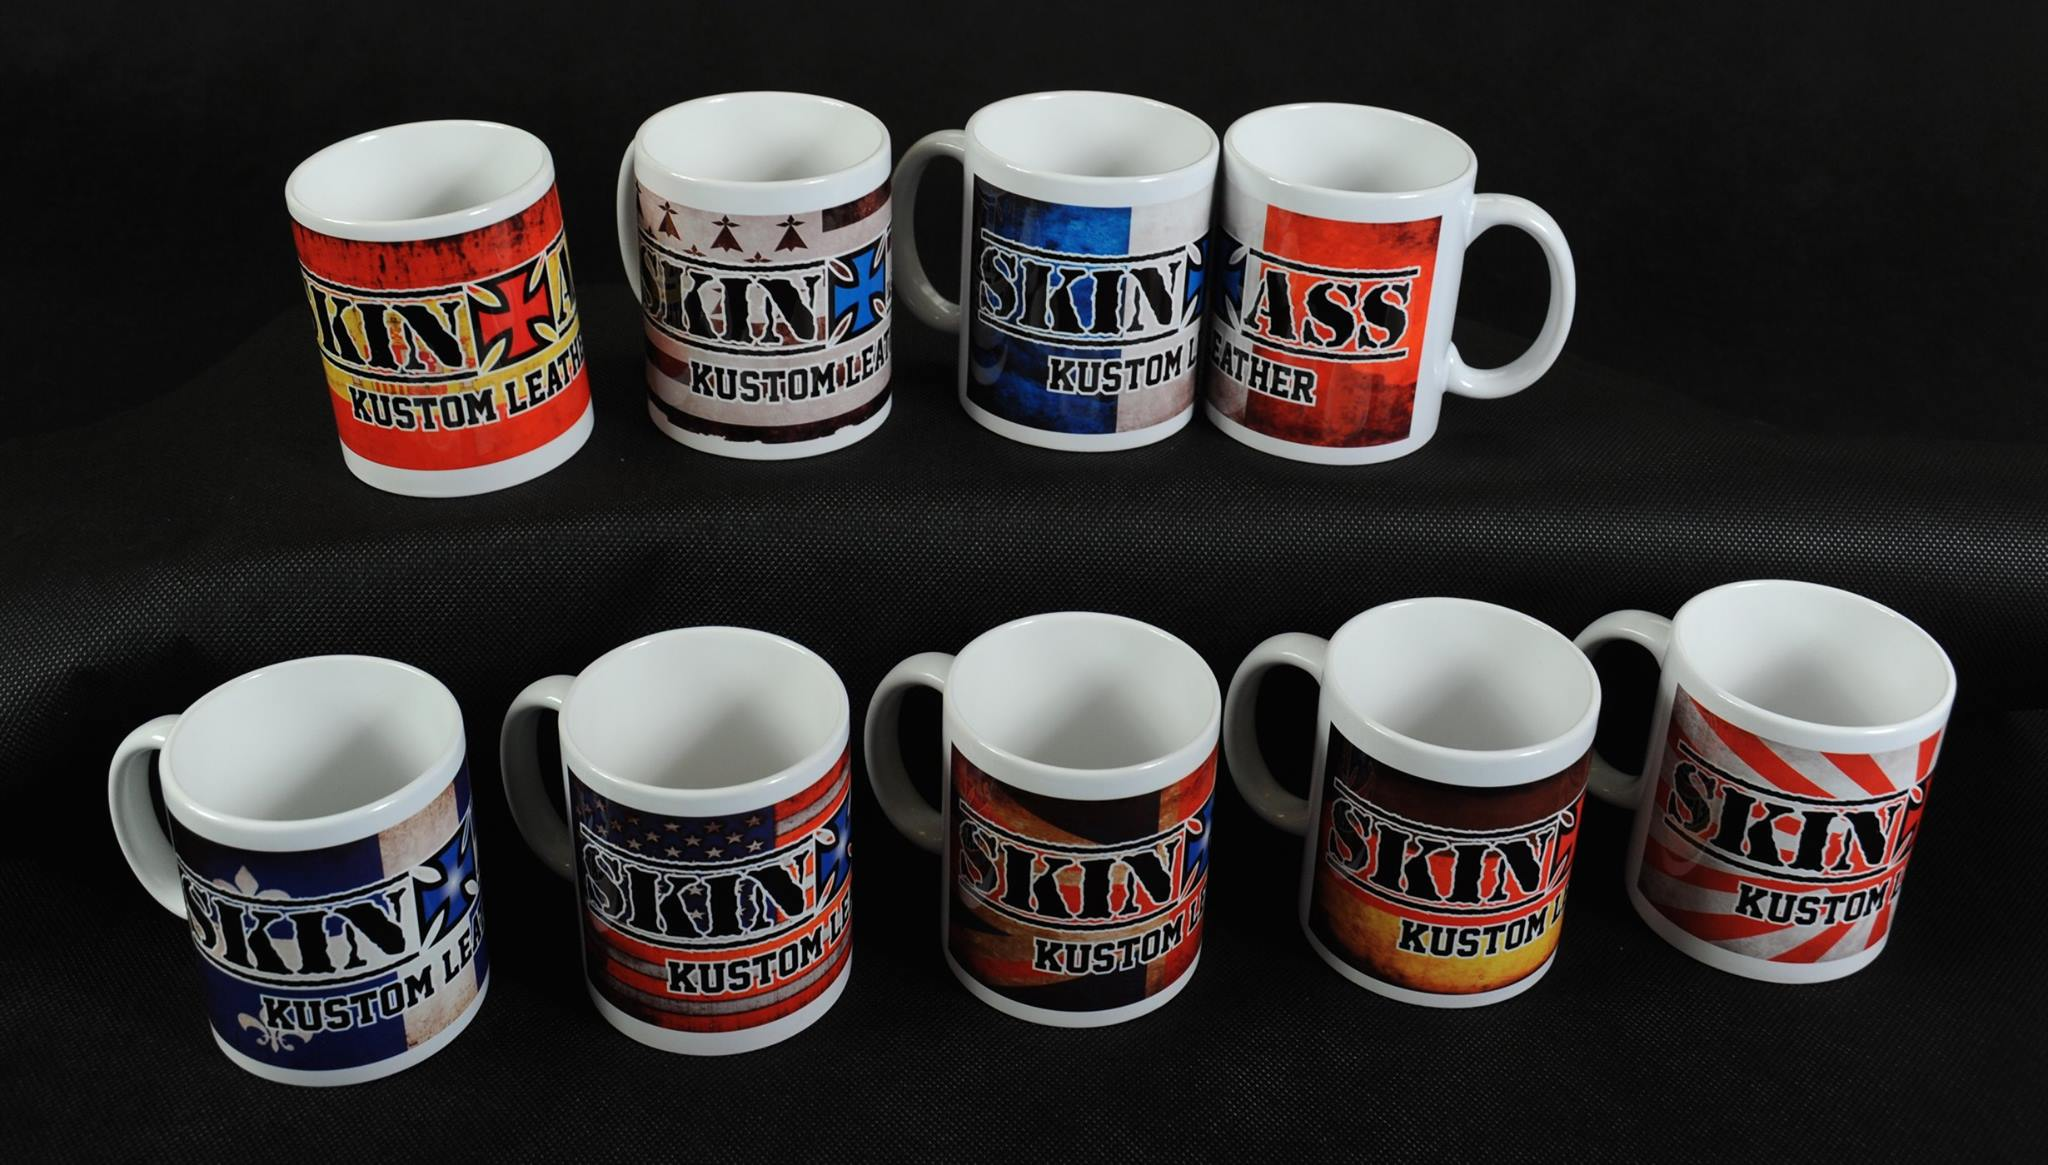 skinass - mugs - collection